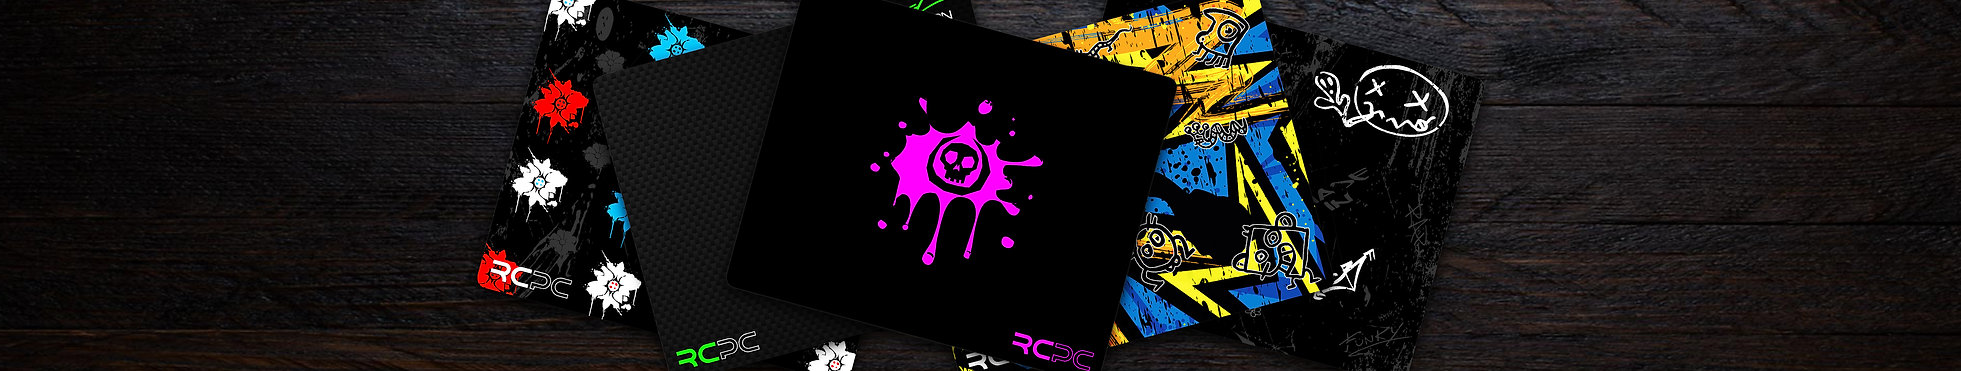 Banner Gaming Mouse Pad Page 2.jpg